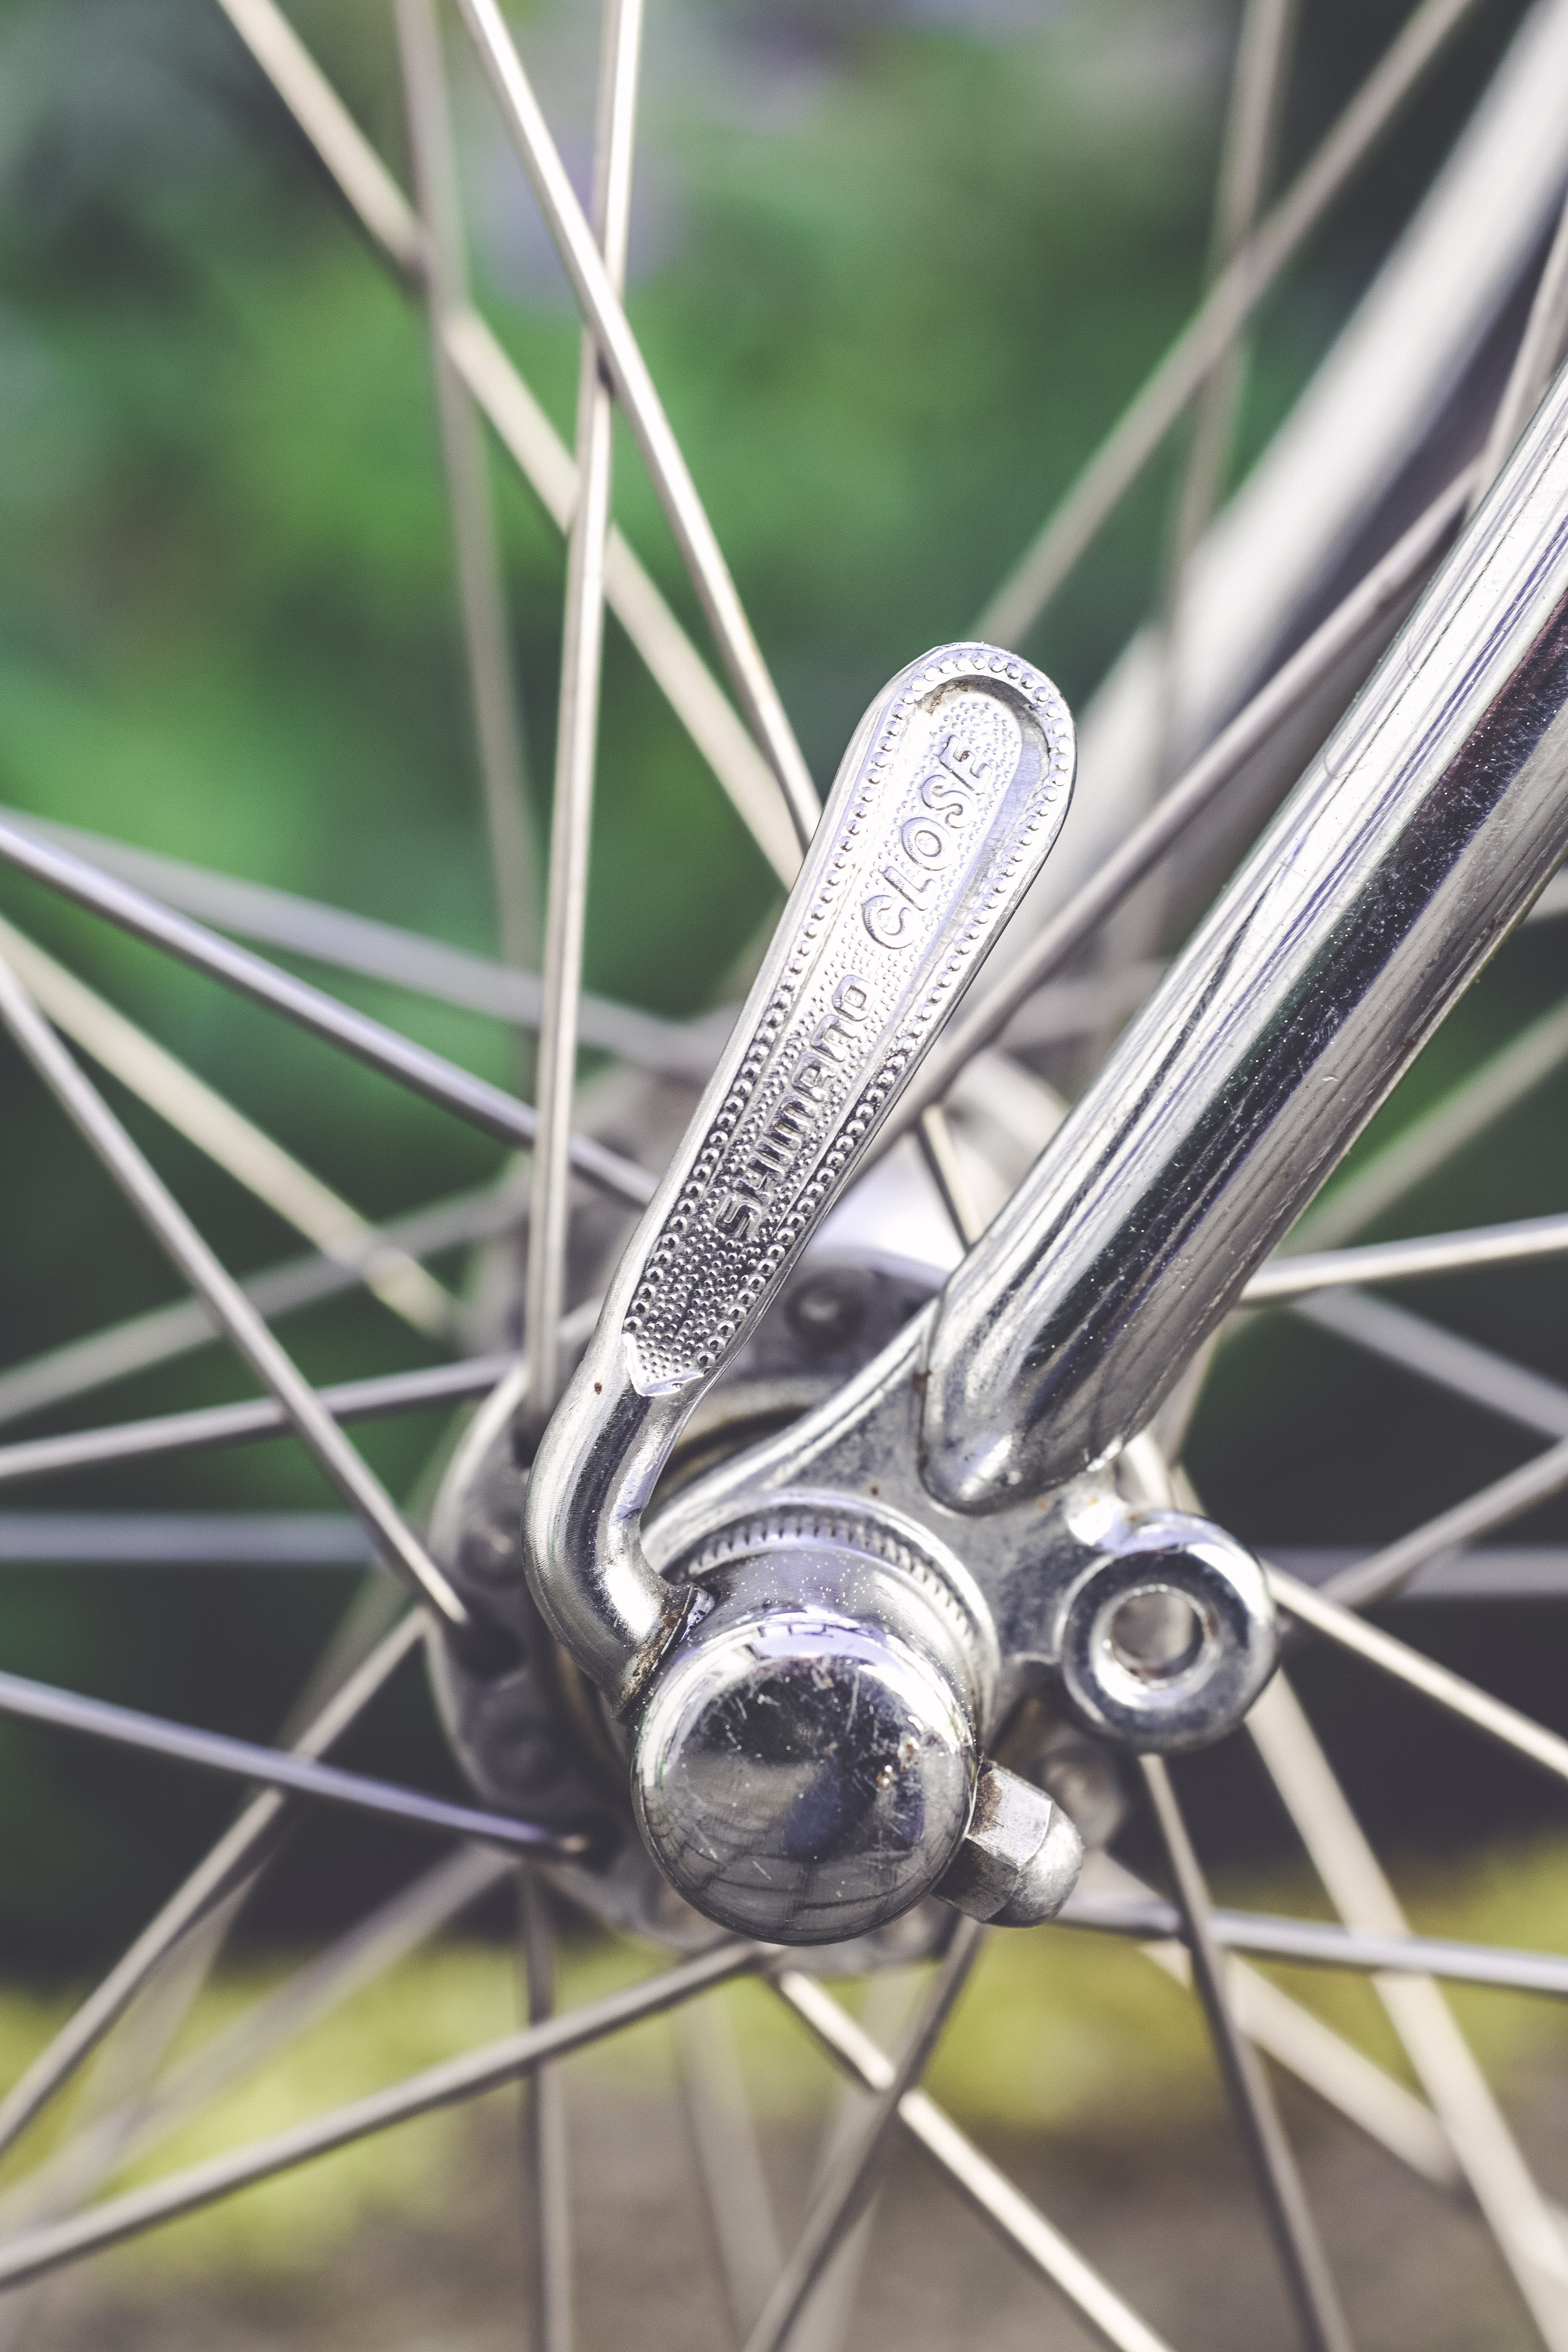 Close-Up Photography of Wheel Spokes